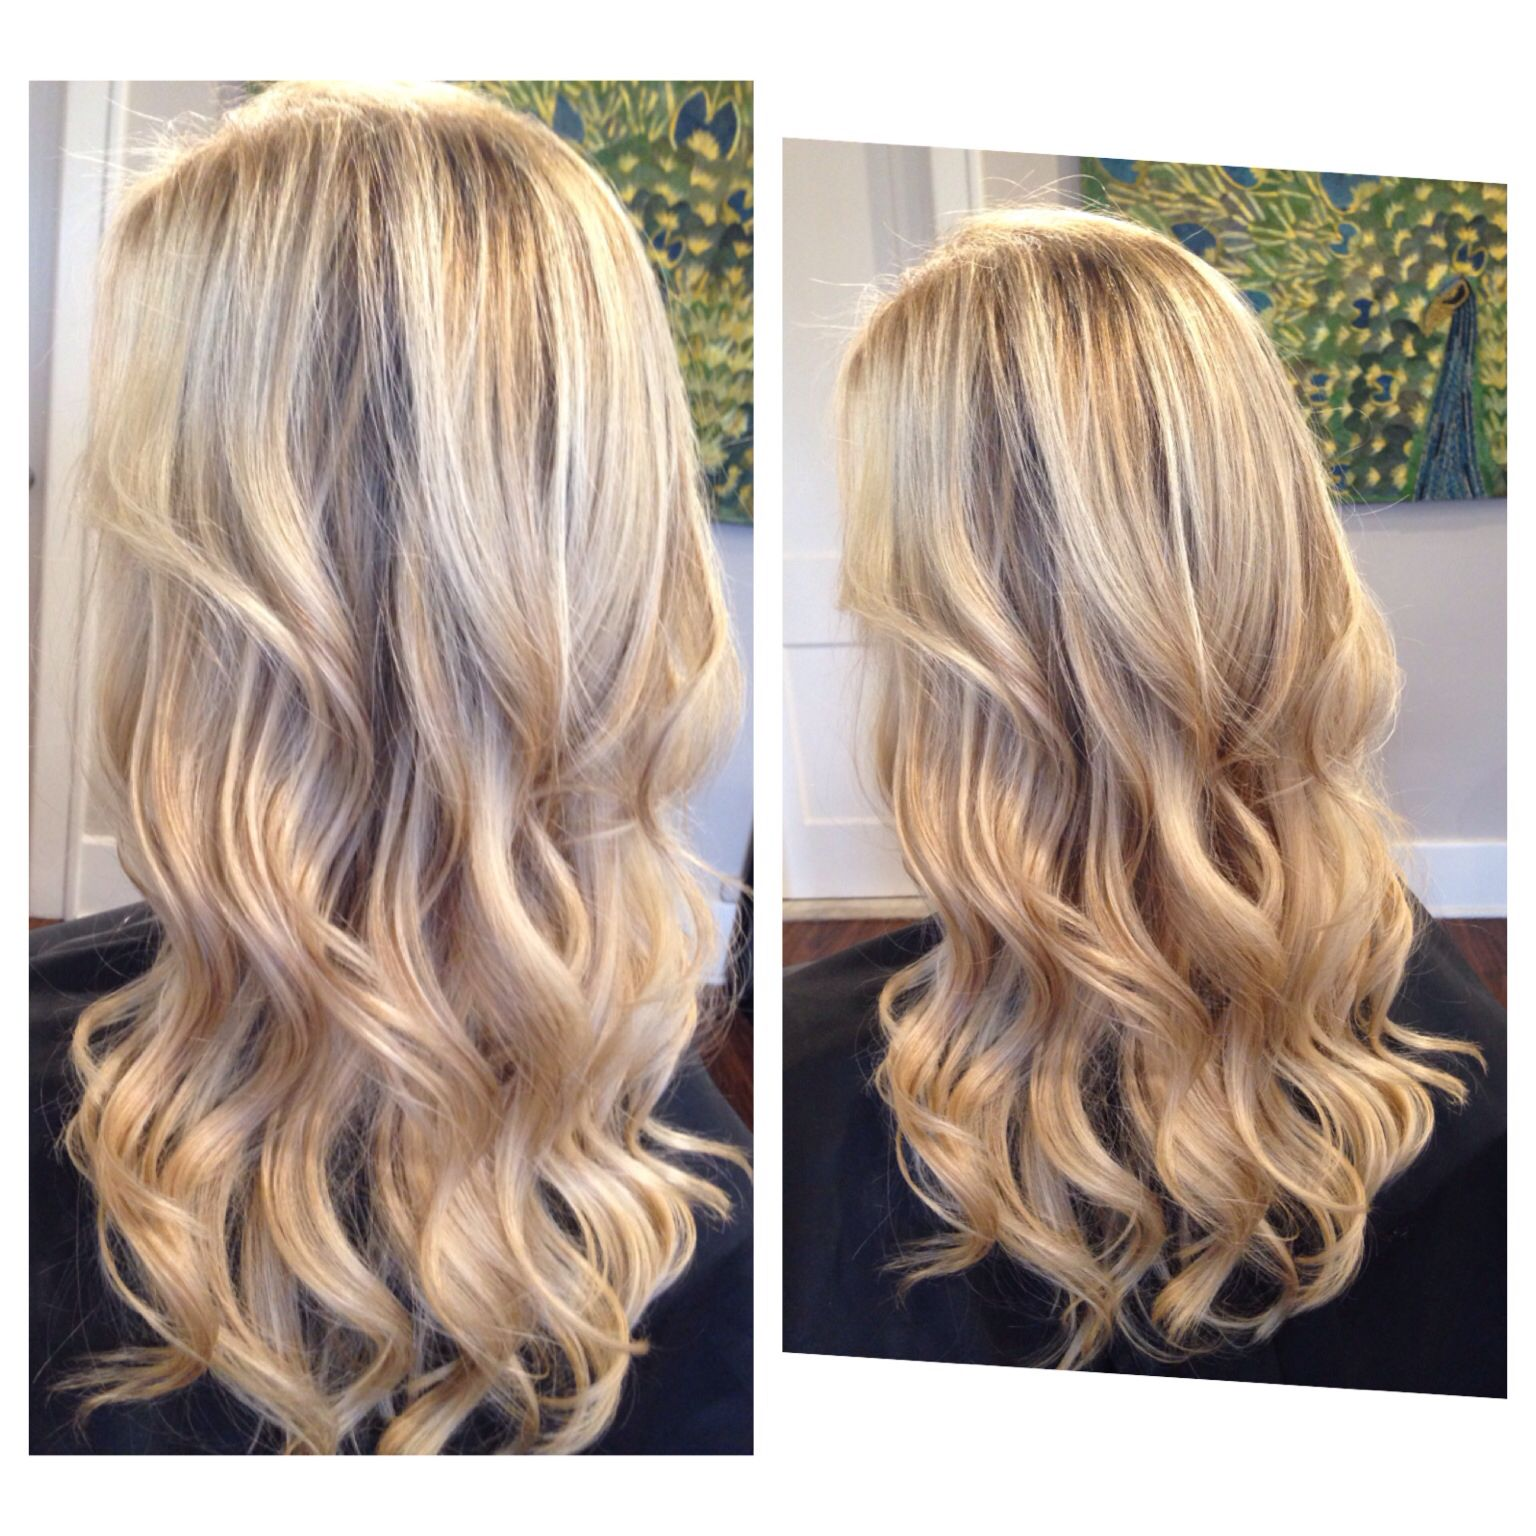 Blonde dimension and blonding magic waterfall cascading waves and